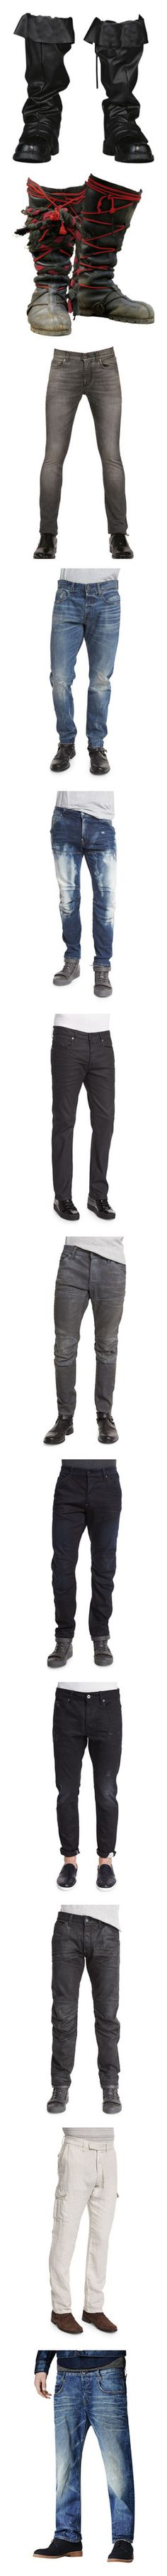 """""""Male Doll Pants"""" by kbarkstyle ❤ liked on Polyvore featuring shoes, pirate, boots, doll men, dolls, men's fashion, men's clothing, men's jeans, dk aged restored and mens distressed jeans"""